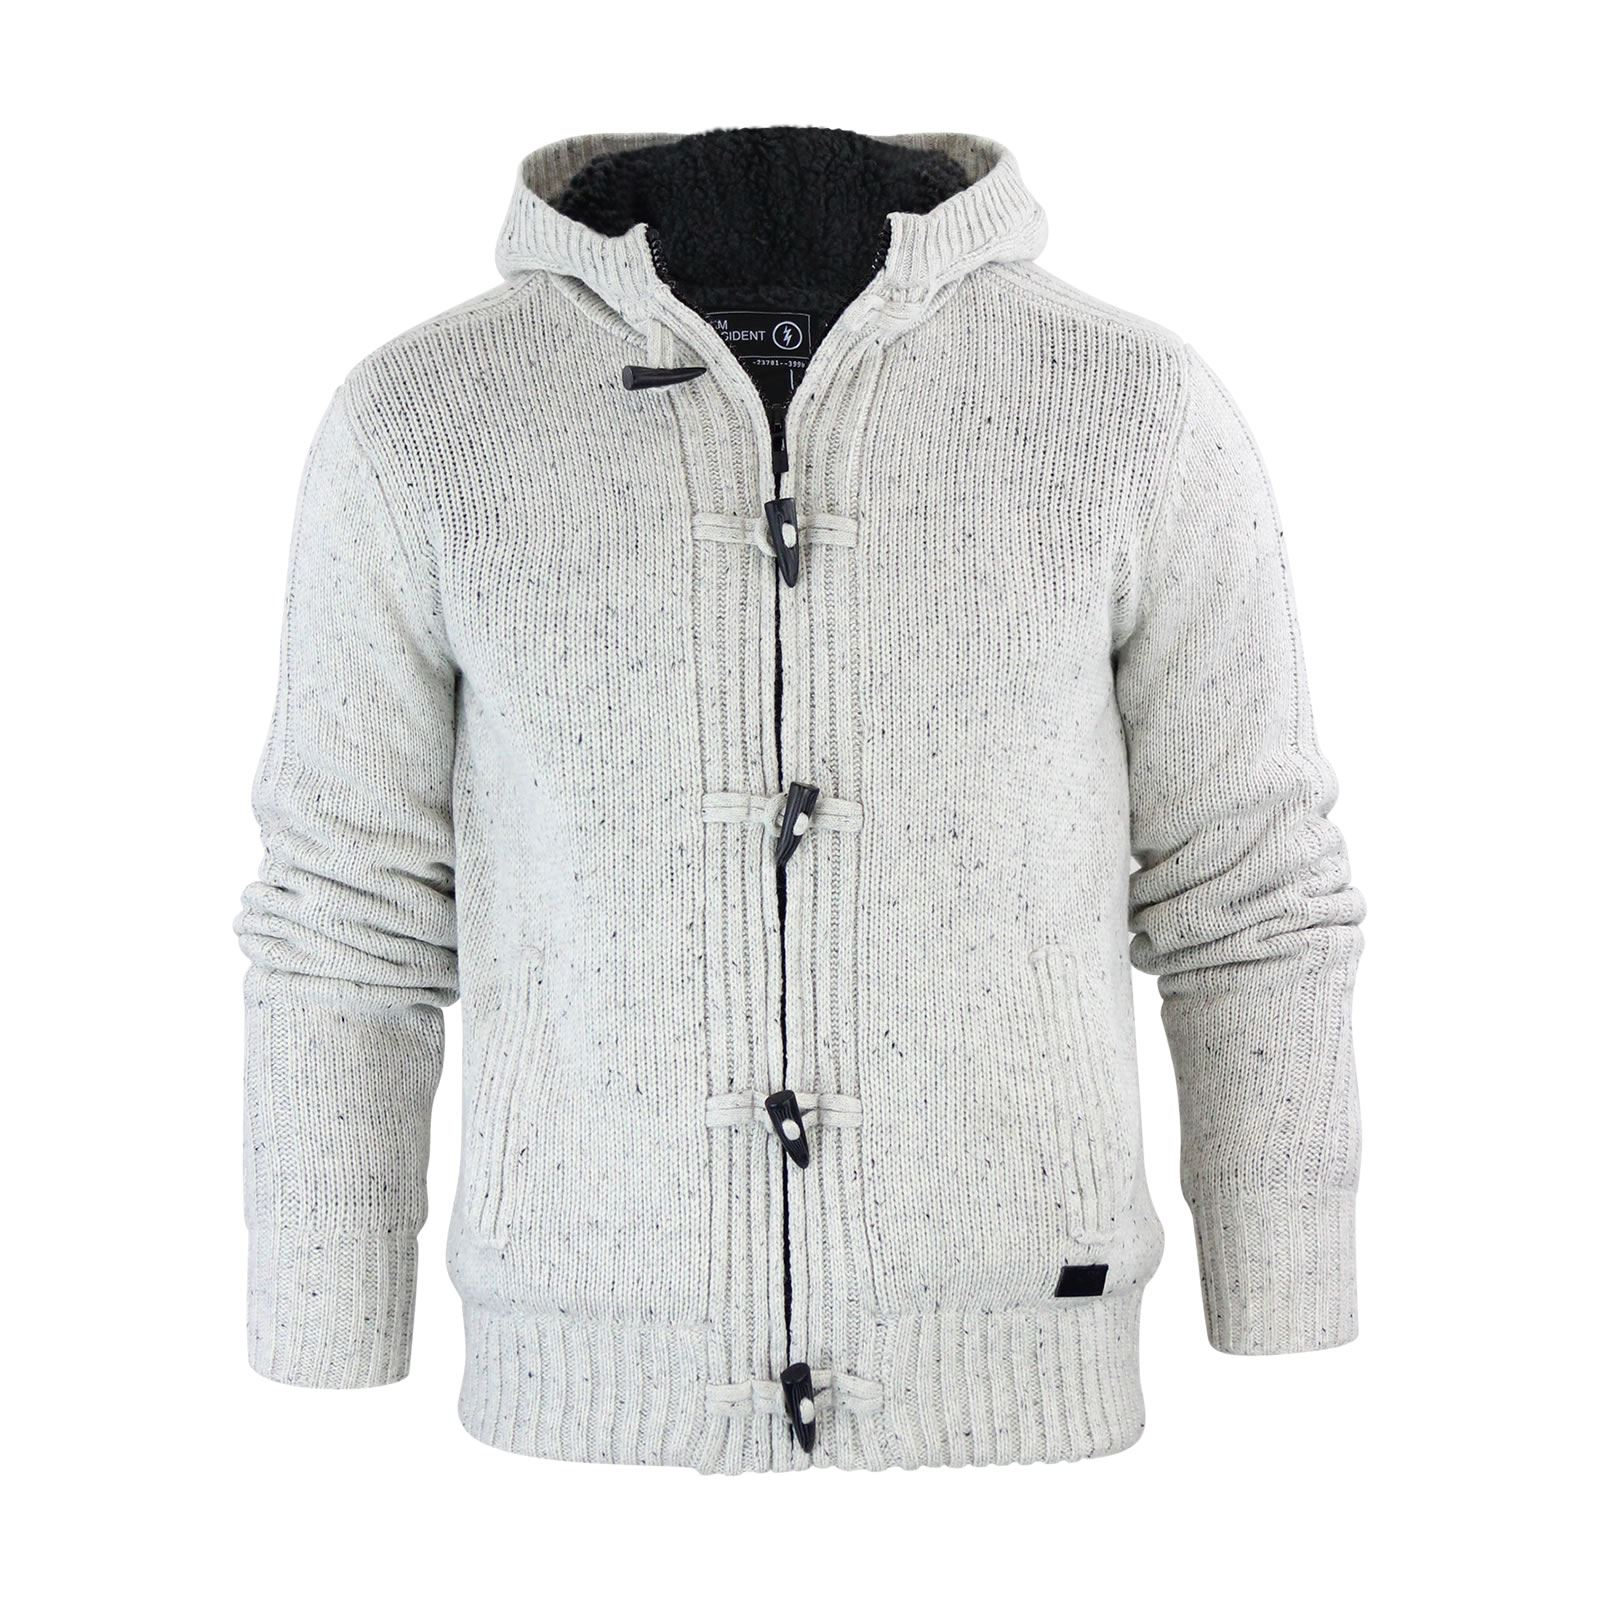 Dissident Falkirk Mens Cardigan Jumper Hooded Sherpa Fleece Lined Zip Up  Jacket; Picture 2 of 4 ...